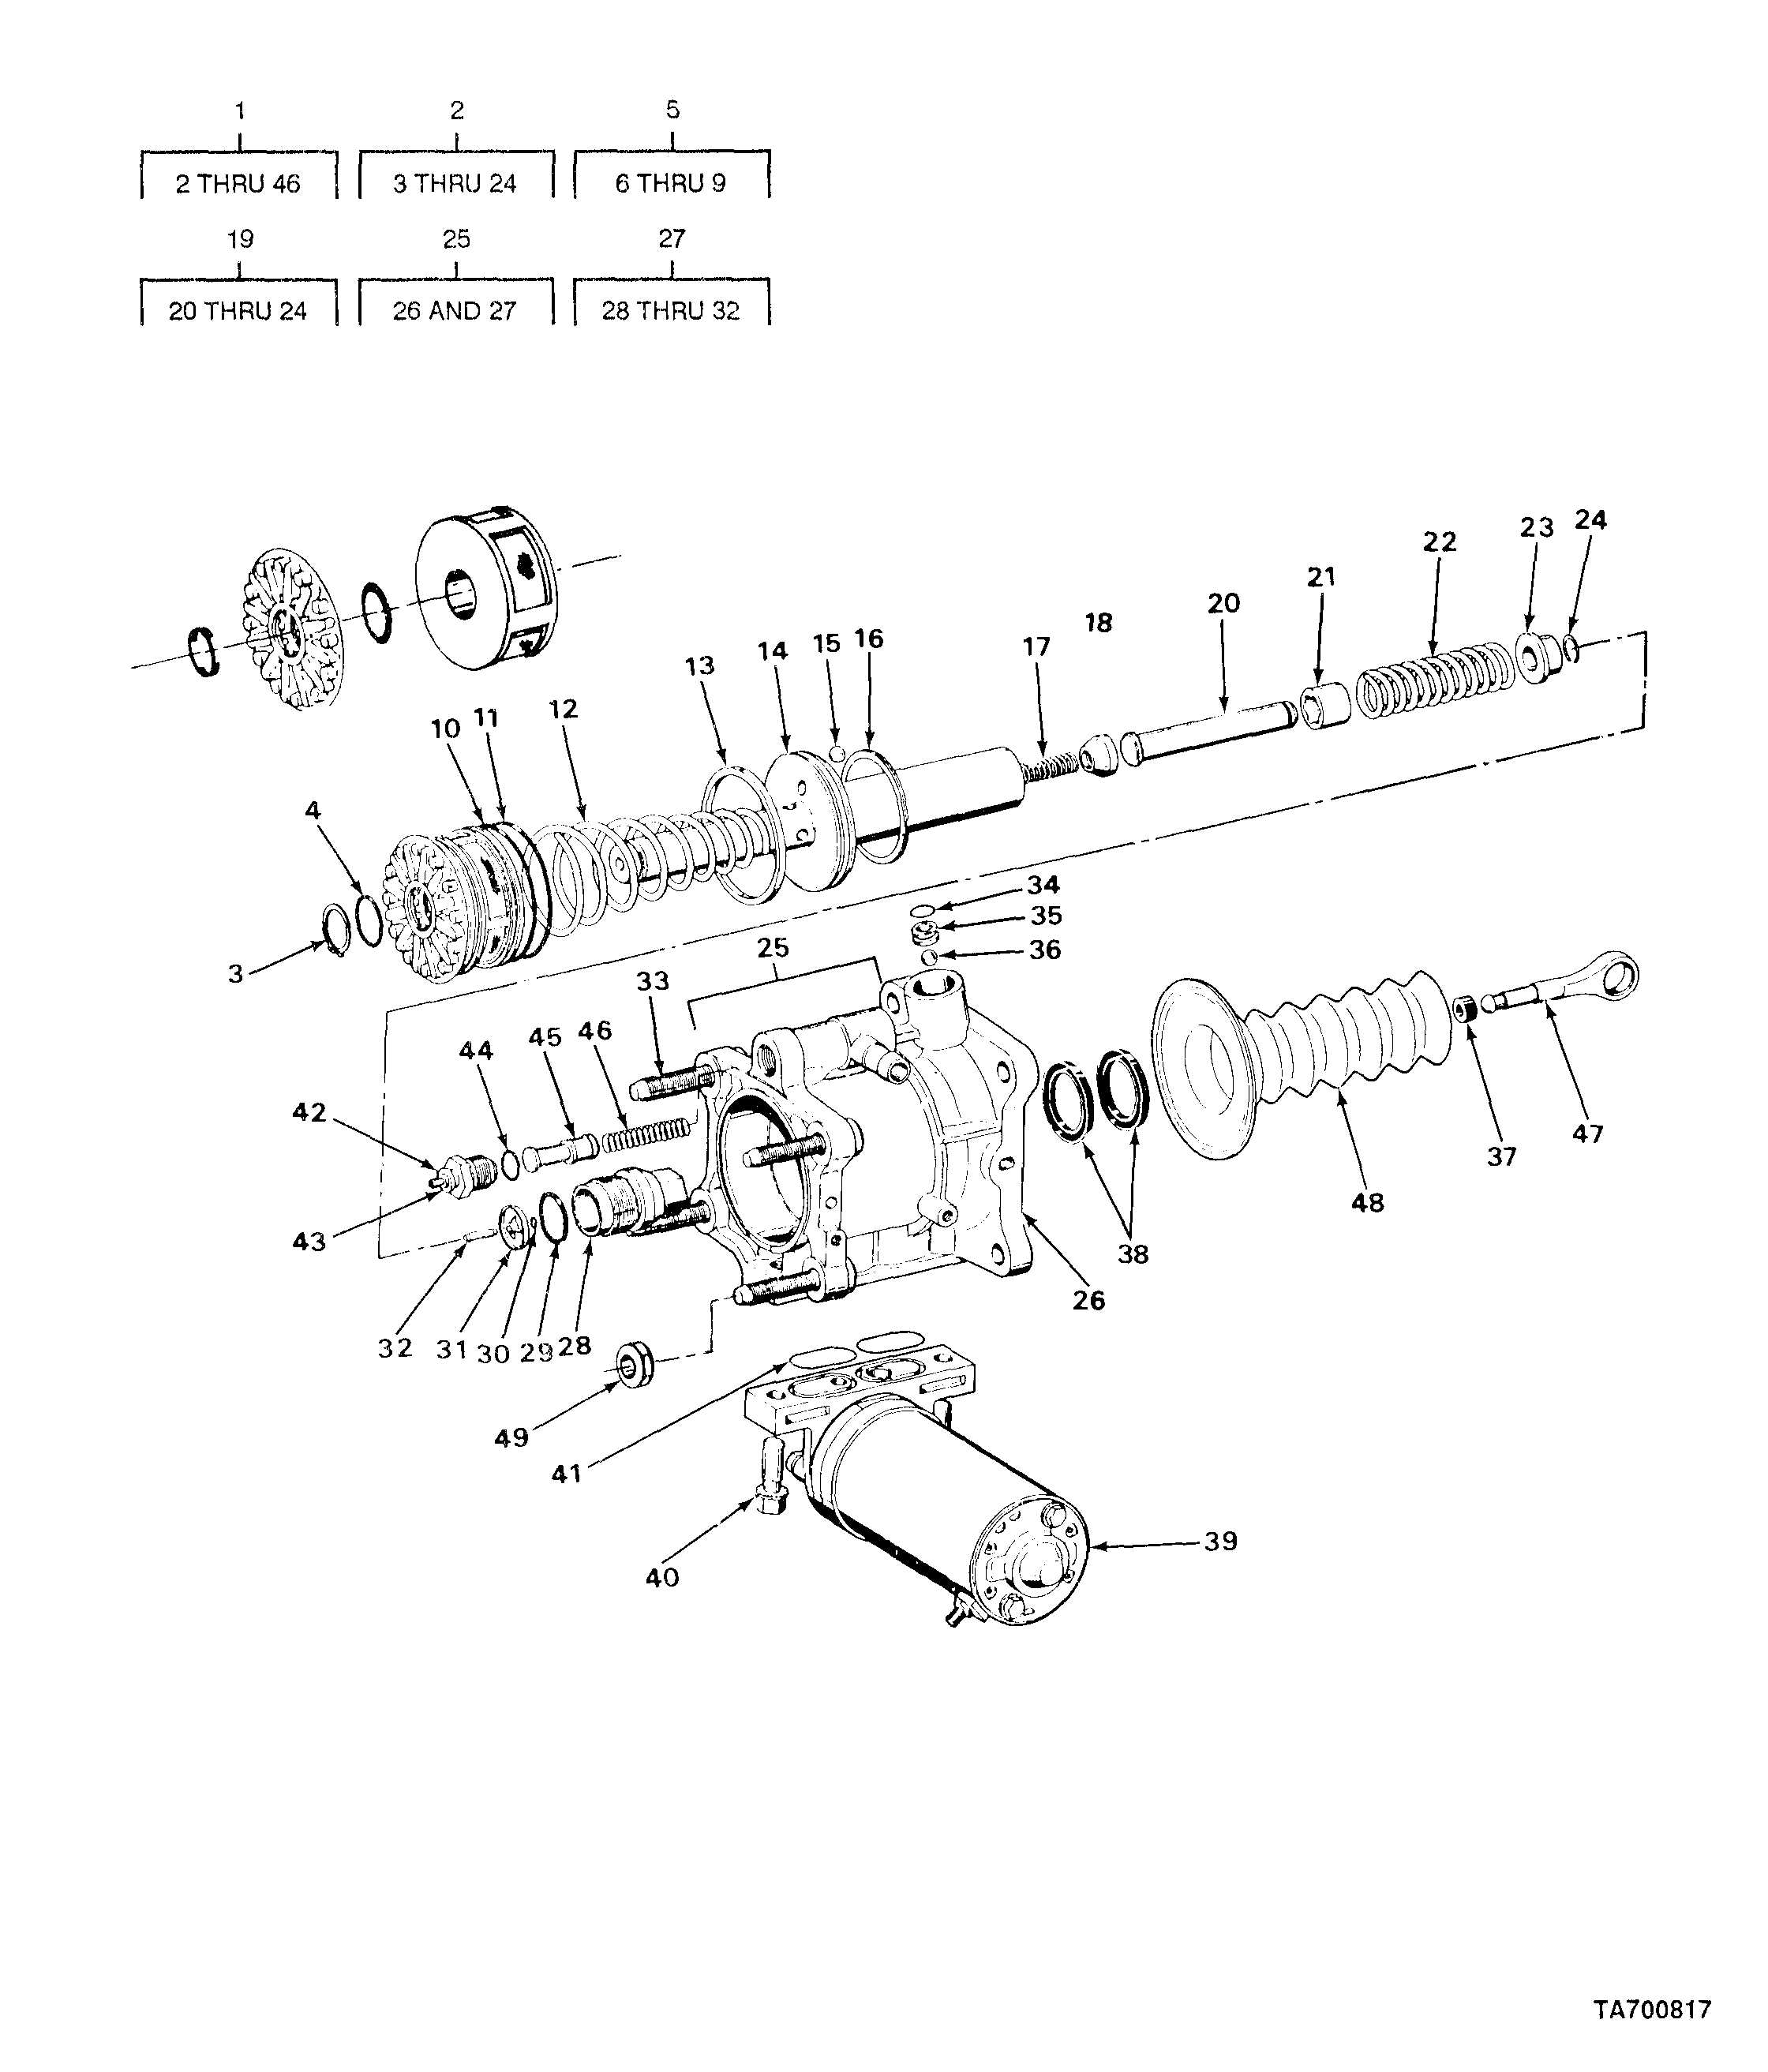 FIGURE 83. HYDRAULIC BOOSTER ASSEMBLY